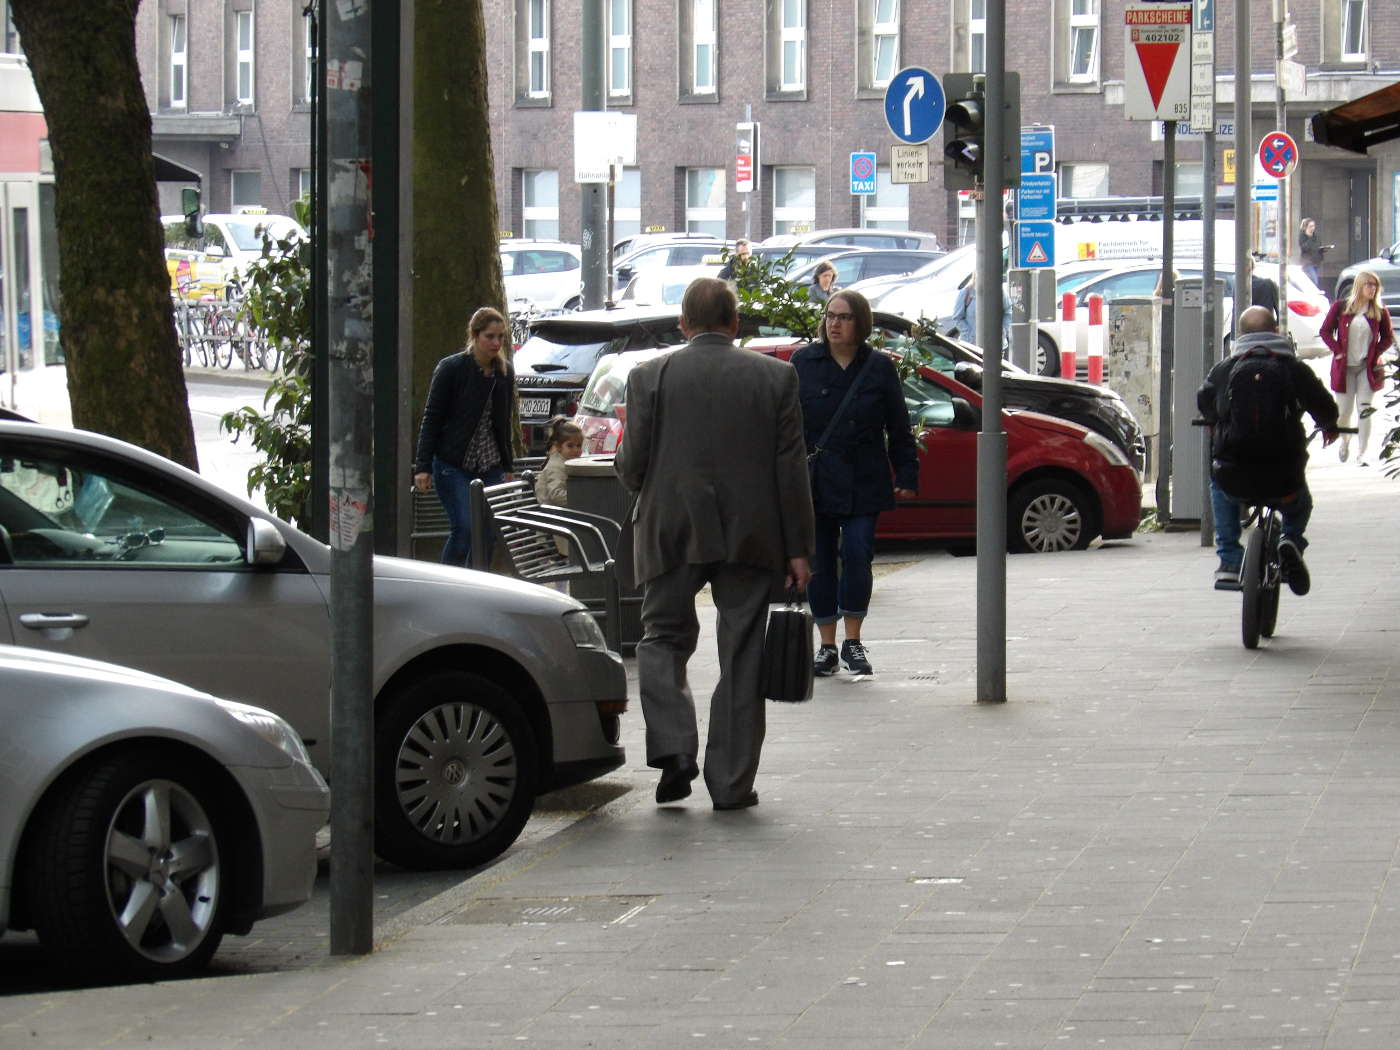 Jehovah's Witness in Duesseldorf - Religion with tie and collar